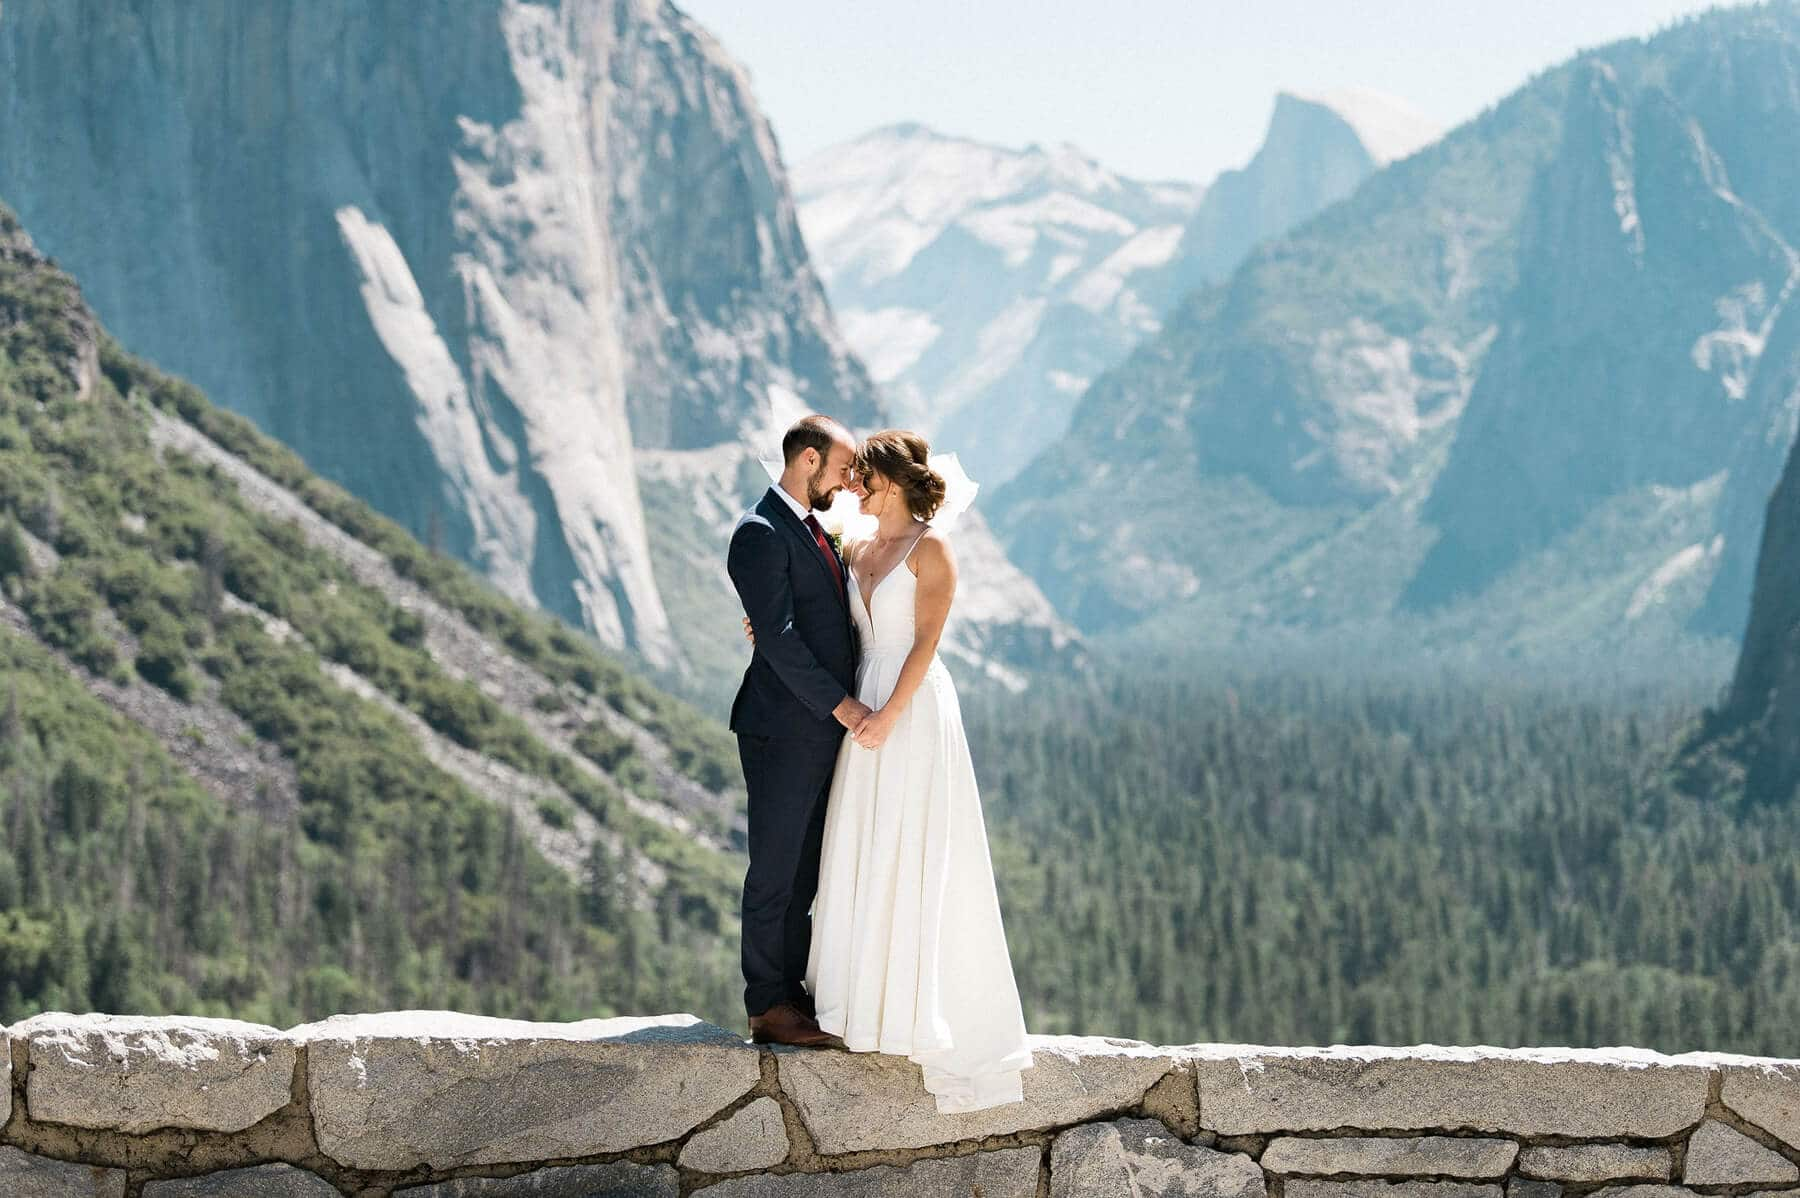 bride and groom posing on wall at tunnel view with halfdome and valley in background yosemite adventure elopement